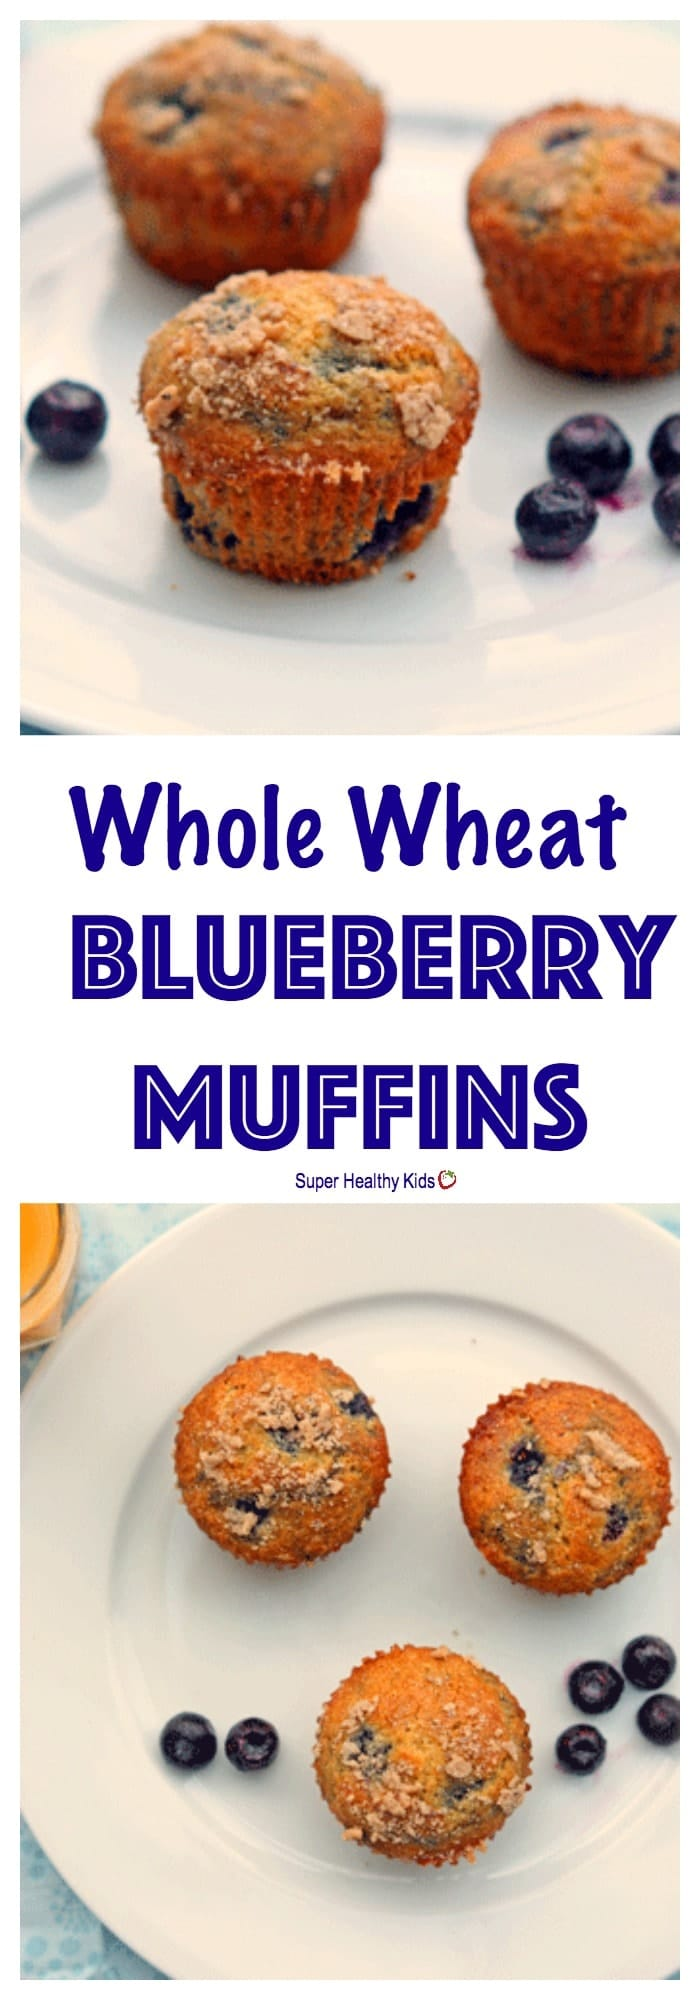 FOOD - Whole Wheat Blueberry Muffins. These muffins are moist, flavorful and delicious..you just get all of that without the guilt. https://www.superhealthykids.com/whole-wheat-blueberry-muffins/